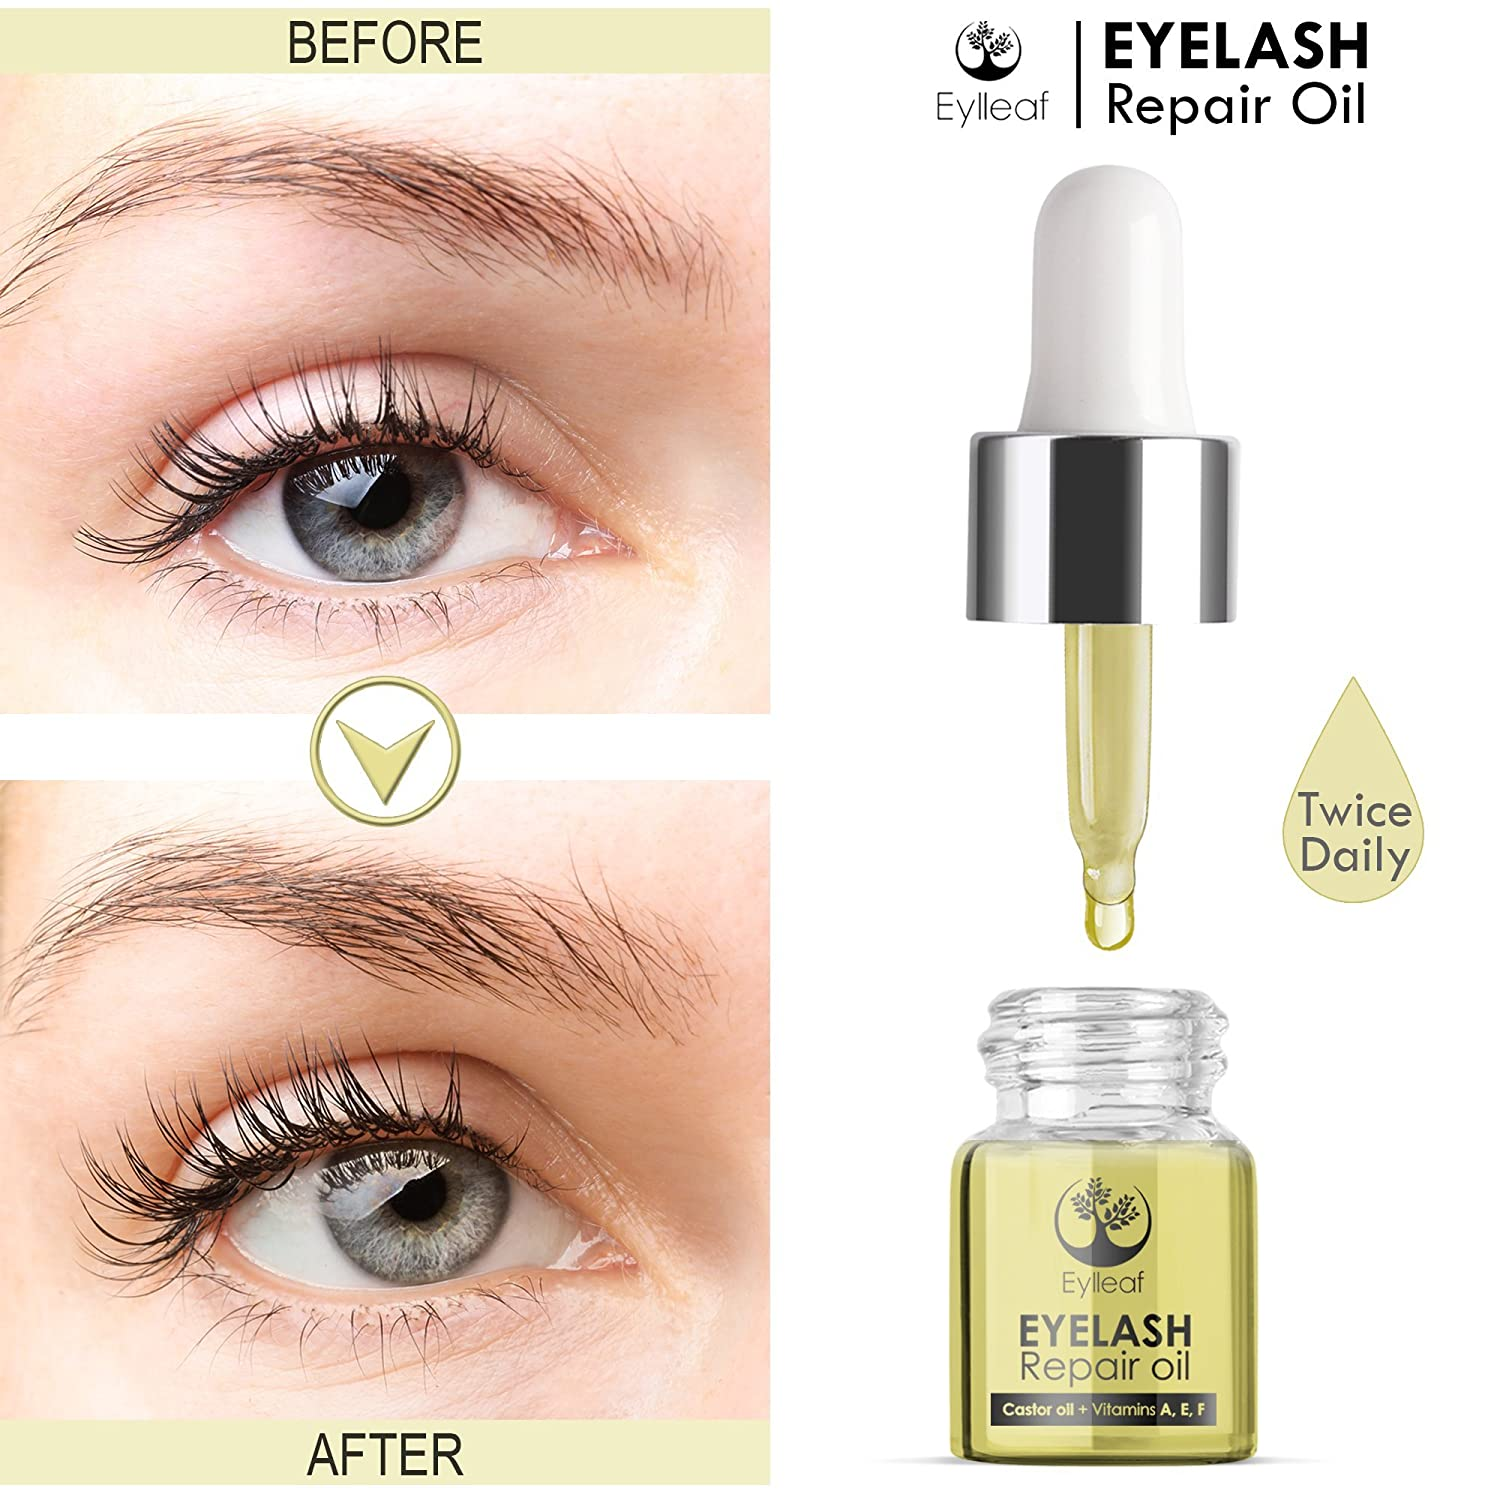 f9f11529726 Eyelash Growth Serum by Eylleaf | Castor Oil Conditioner for Long Natural  Eyelashes and Thick Eyebrows: Amazon.co.uk: Beauty